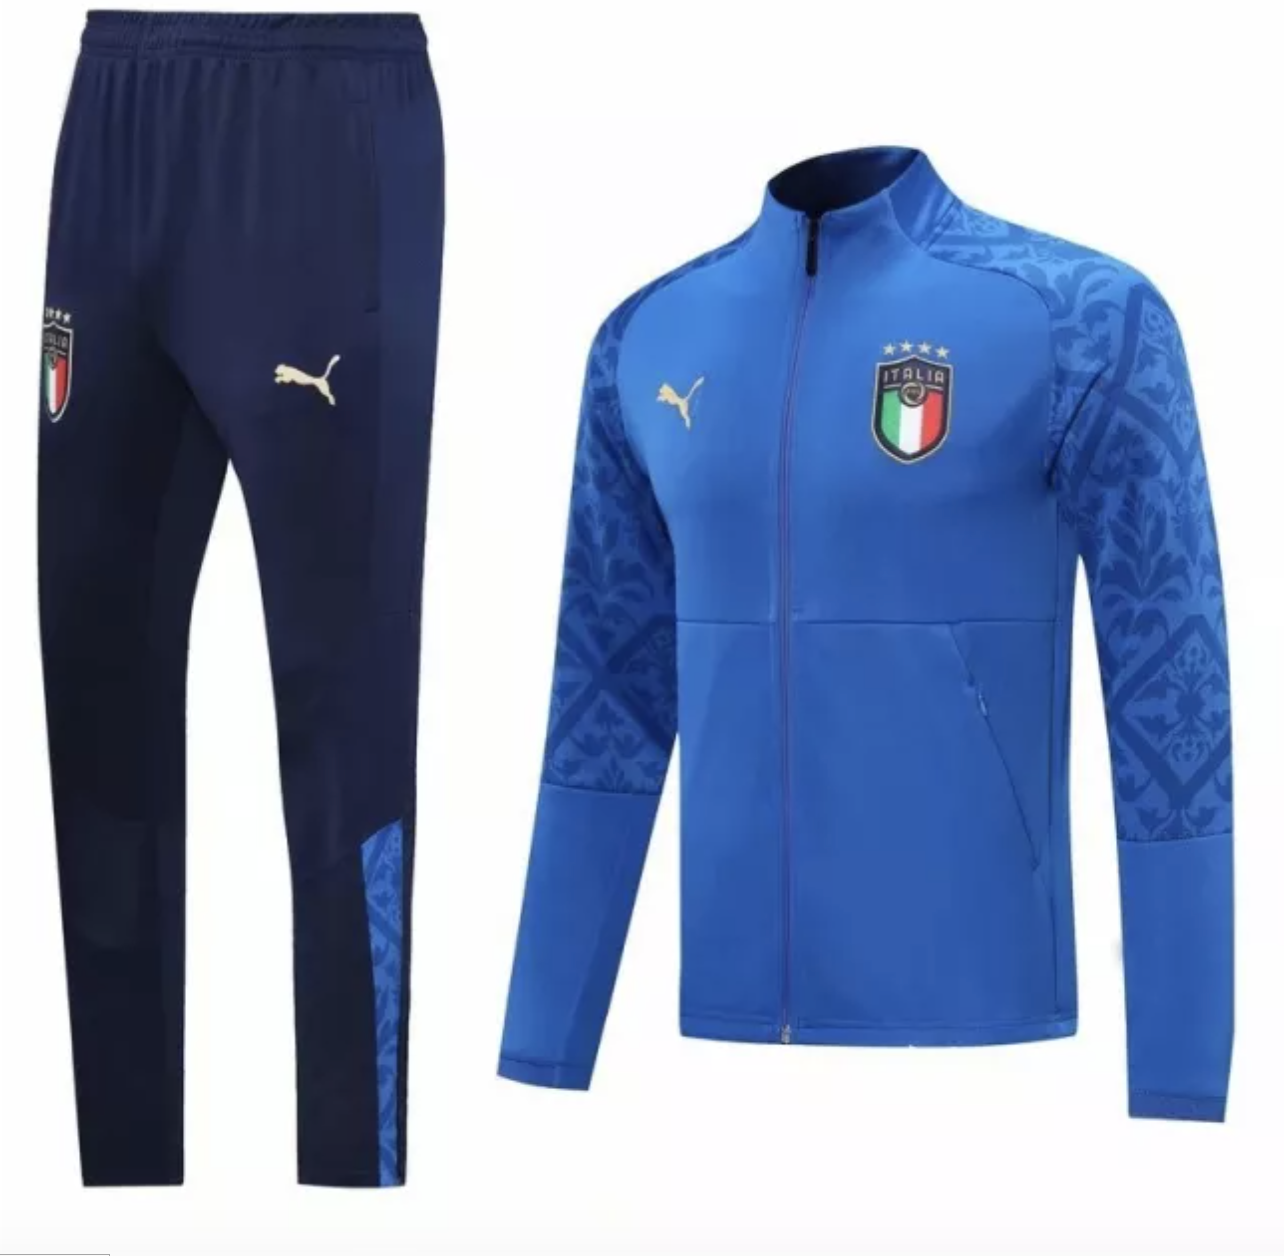 Italy Blue Track Suit 2020